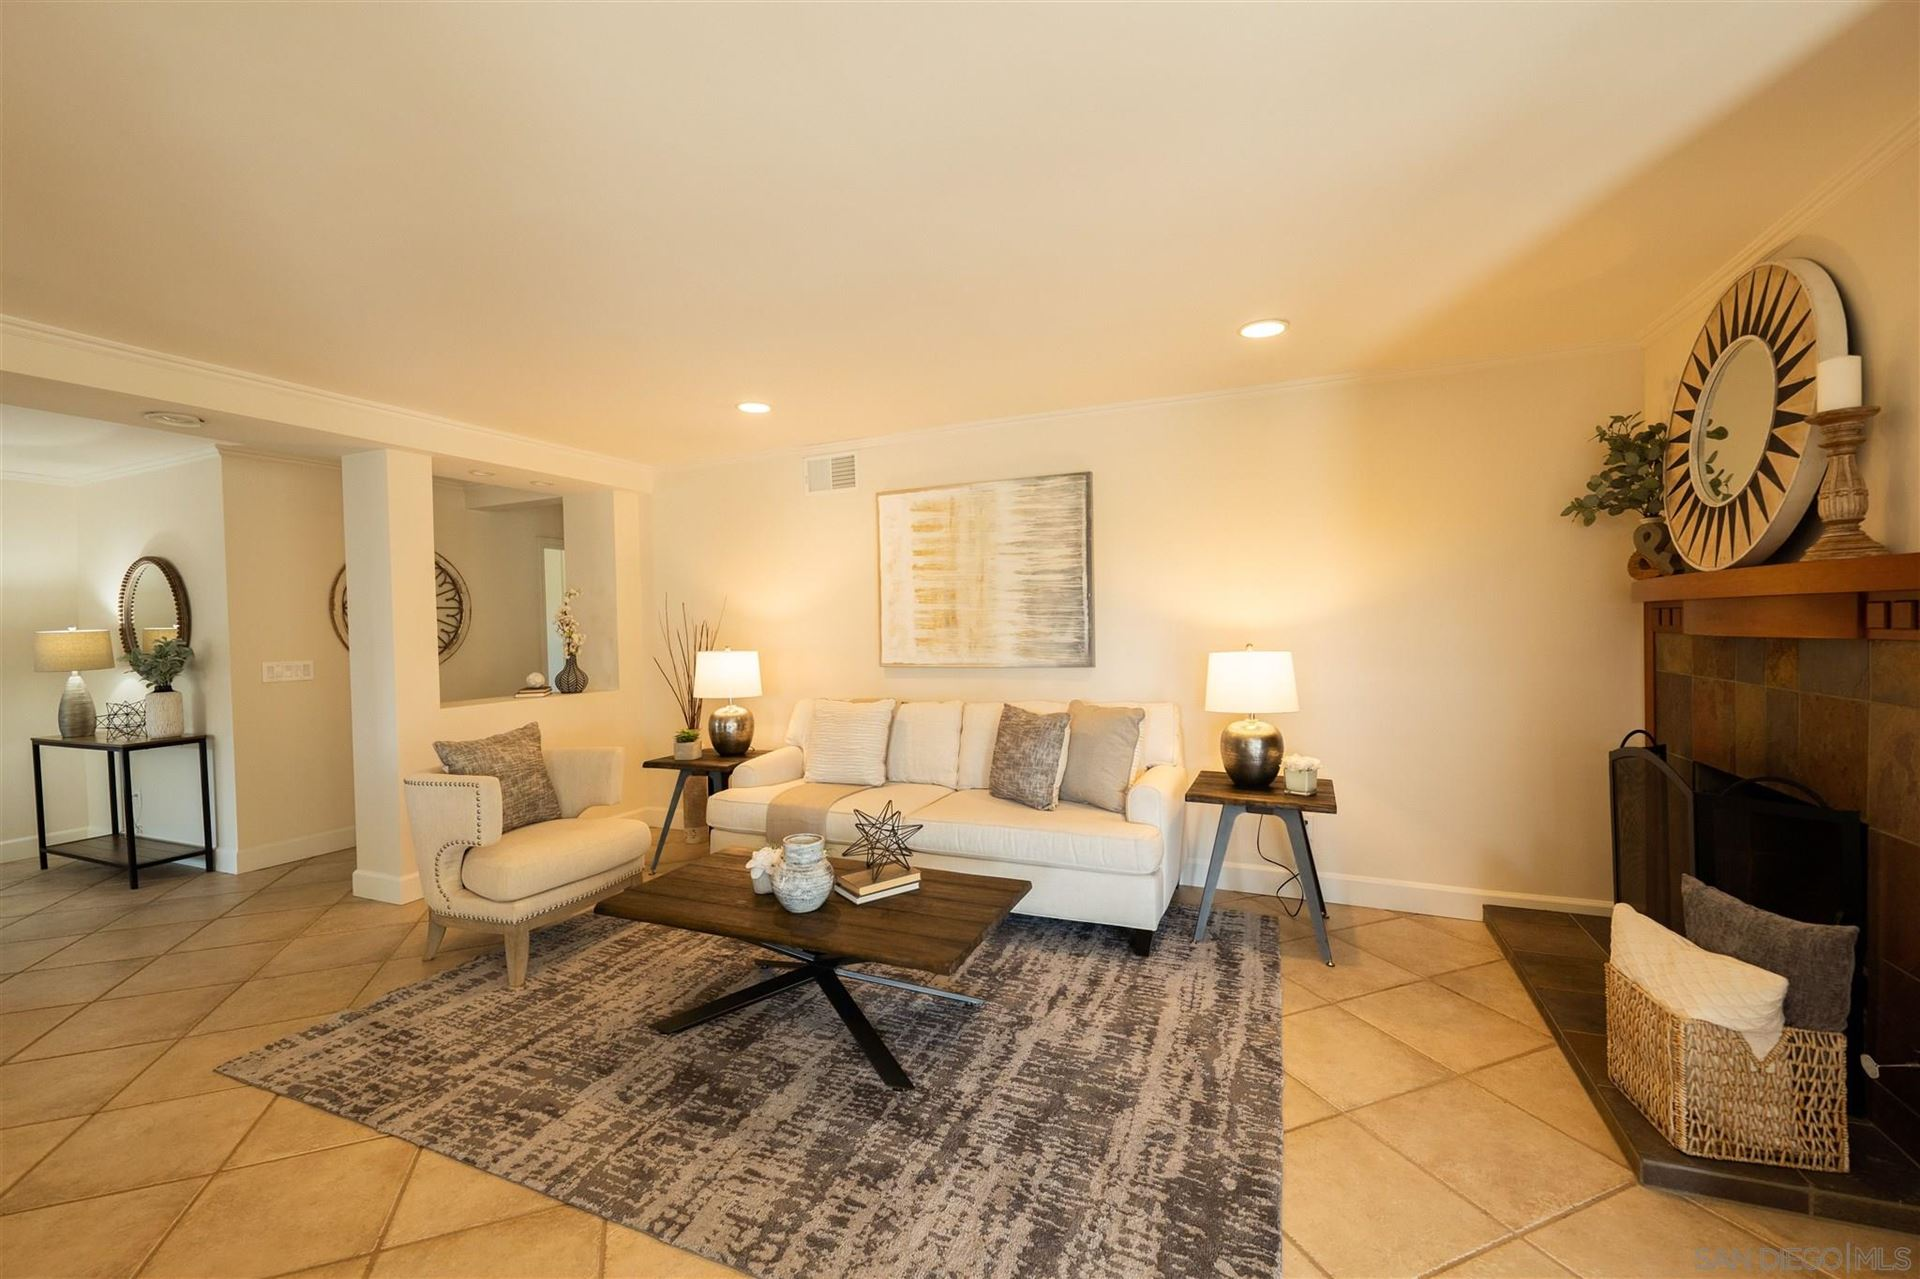 Photo of 14437 Ortez Place, Poway, CA 92064 (MLS # 210009281)